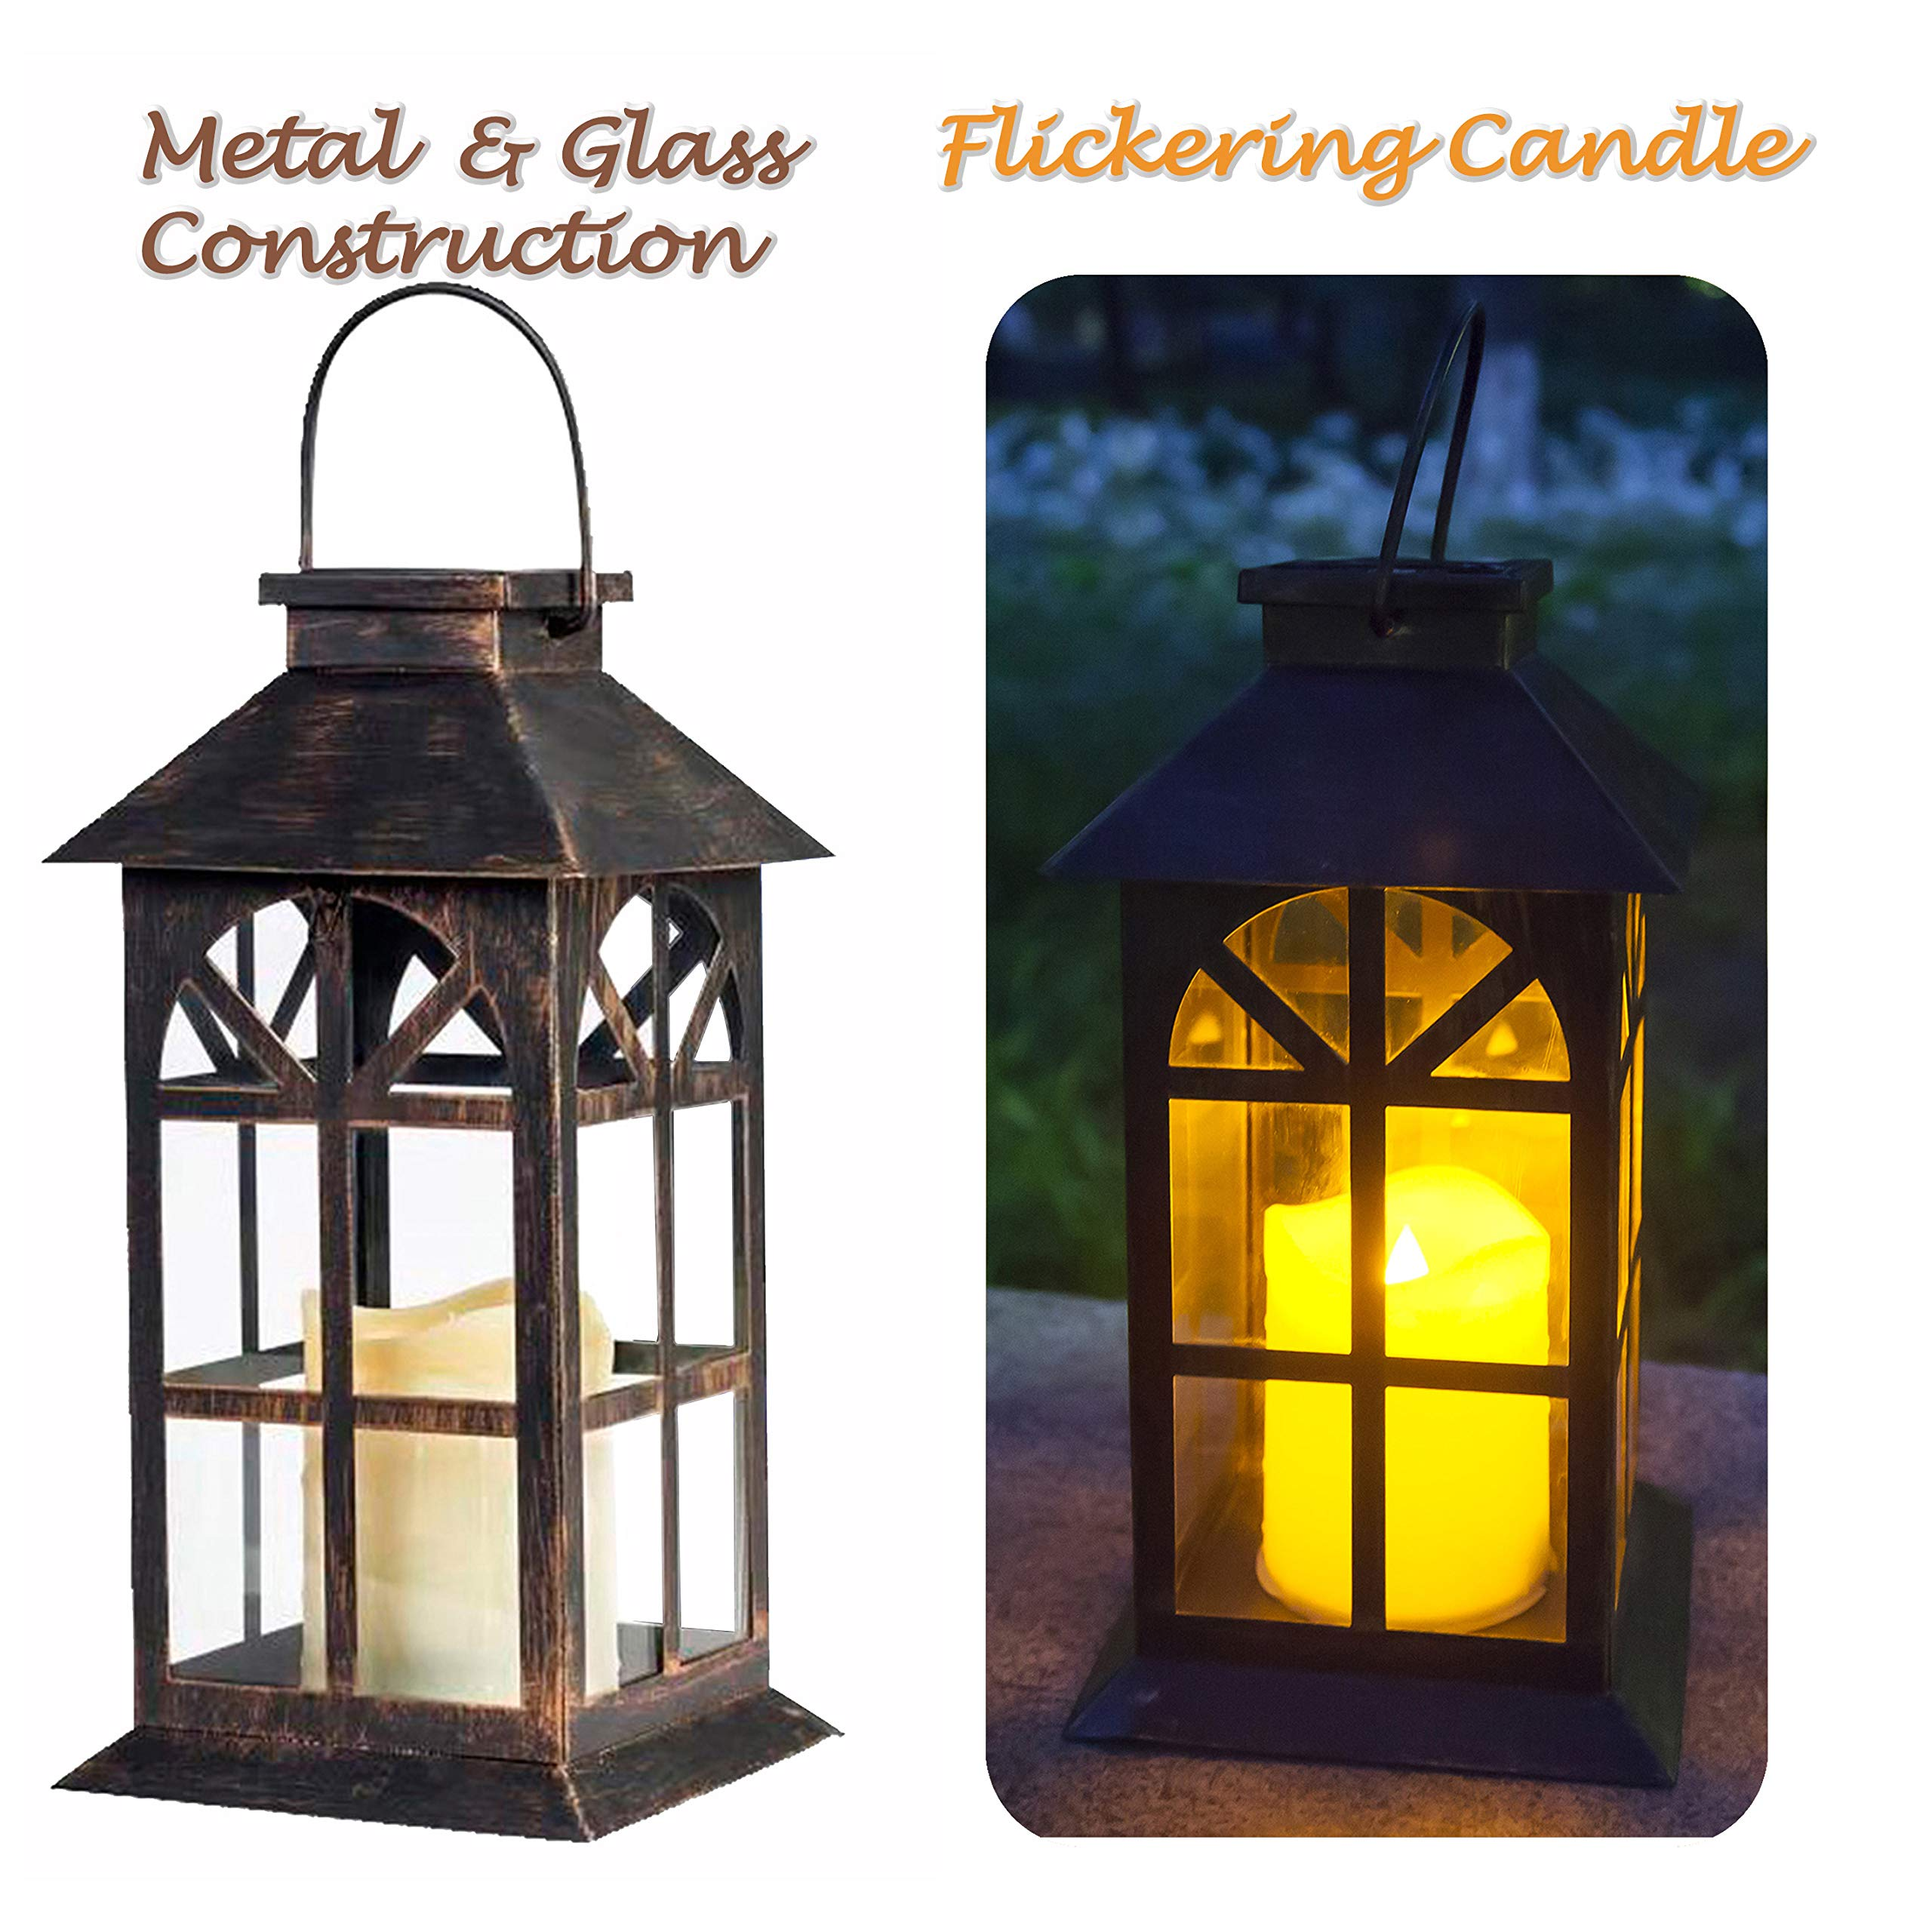 Solar Lantern Outdoor Classic Decor Bronze Antique Metal and Glass Construction Mission Solar Garden Lantern Indoor and Outdoor Solar Hanging Lantern Entirely Solar Powered Lantern of Low Maintenance by SteadyDoggie